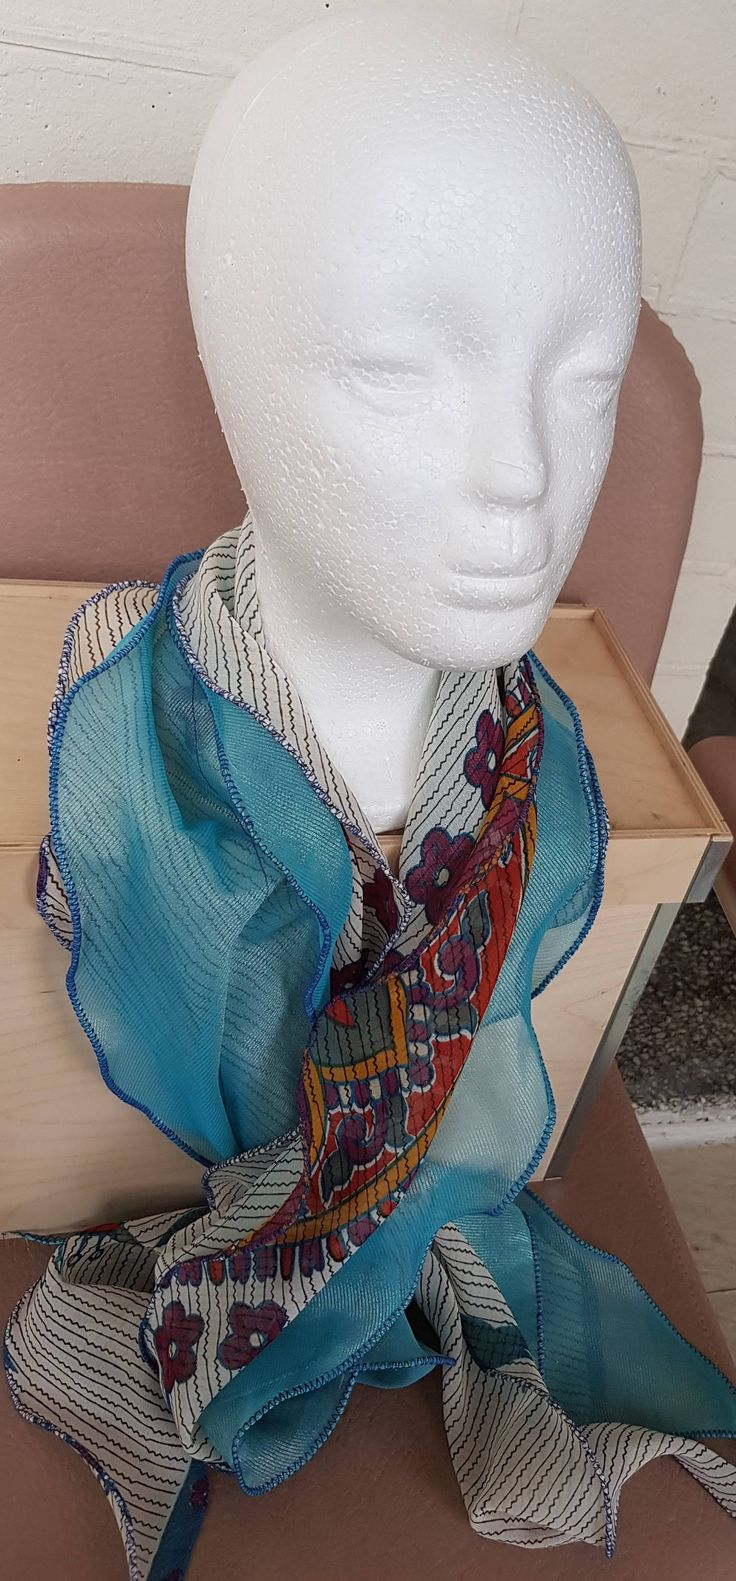 Turquoise Blue and Printed White Bias, Ruffled, Double Layered Scarf with Picot Hem by KalaaStudio on Etsy